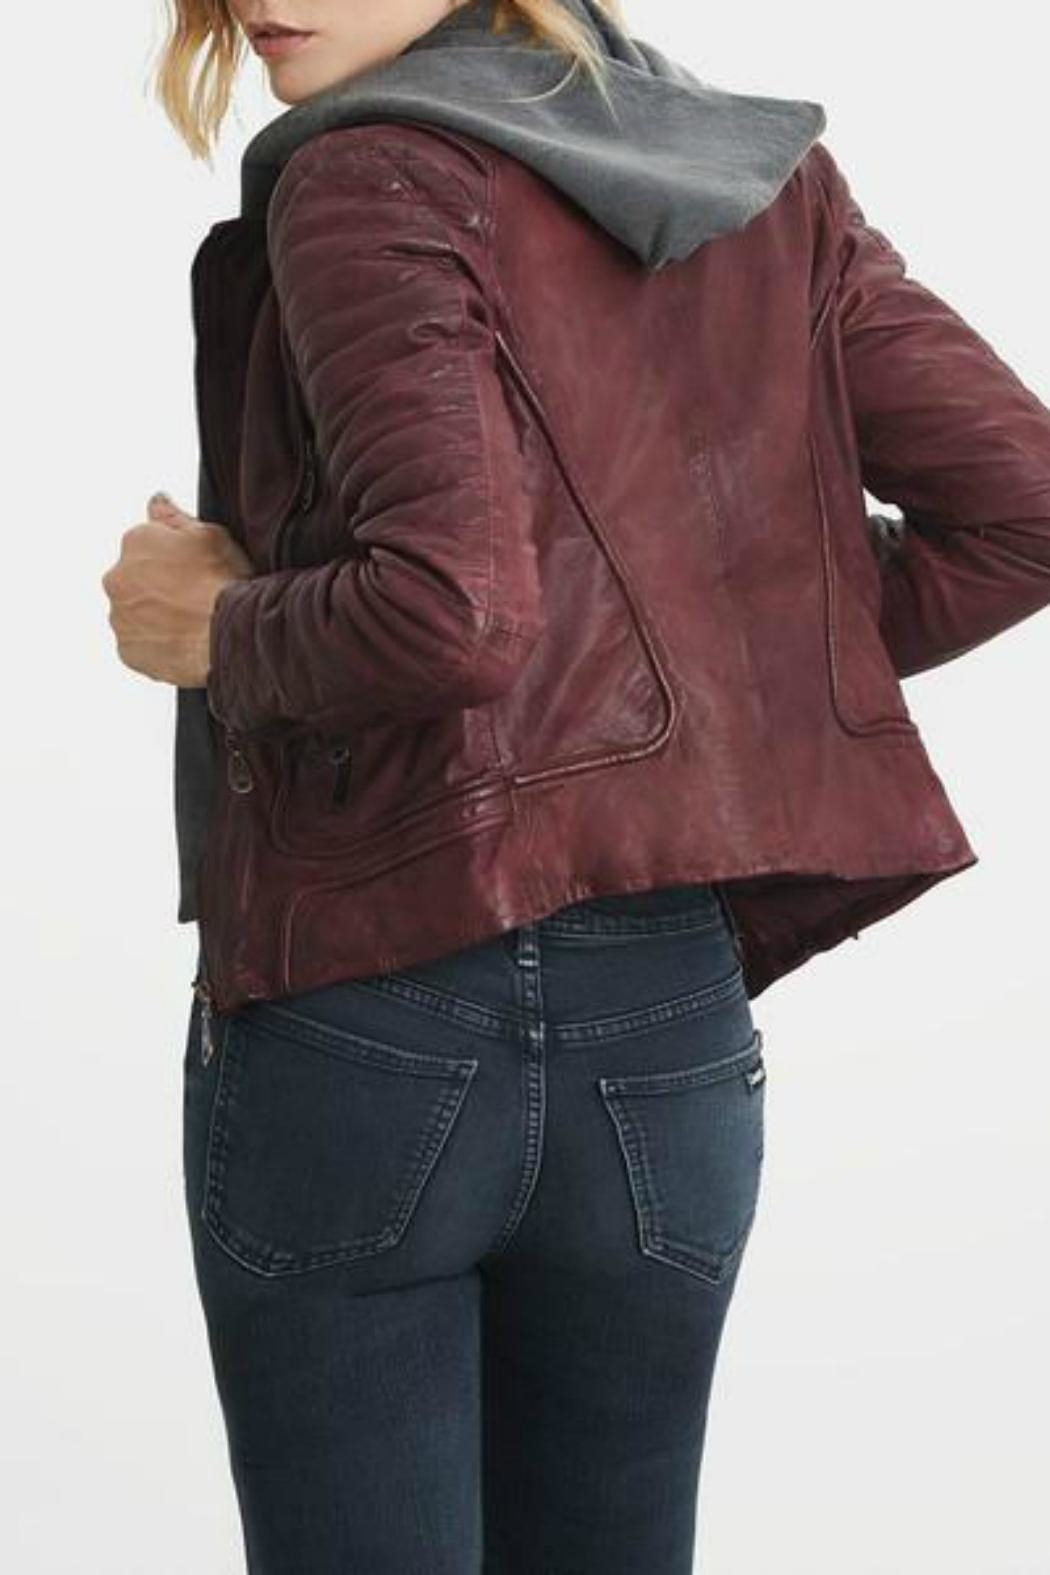 Doma Leather - Side Cropped Image